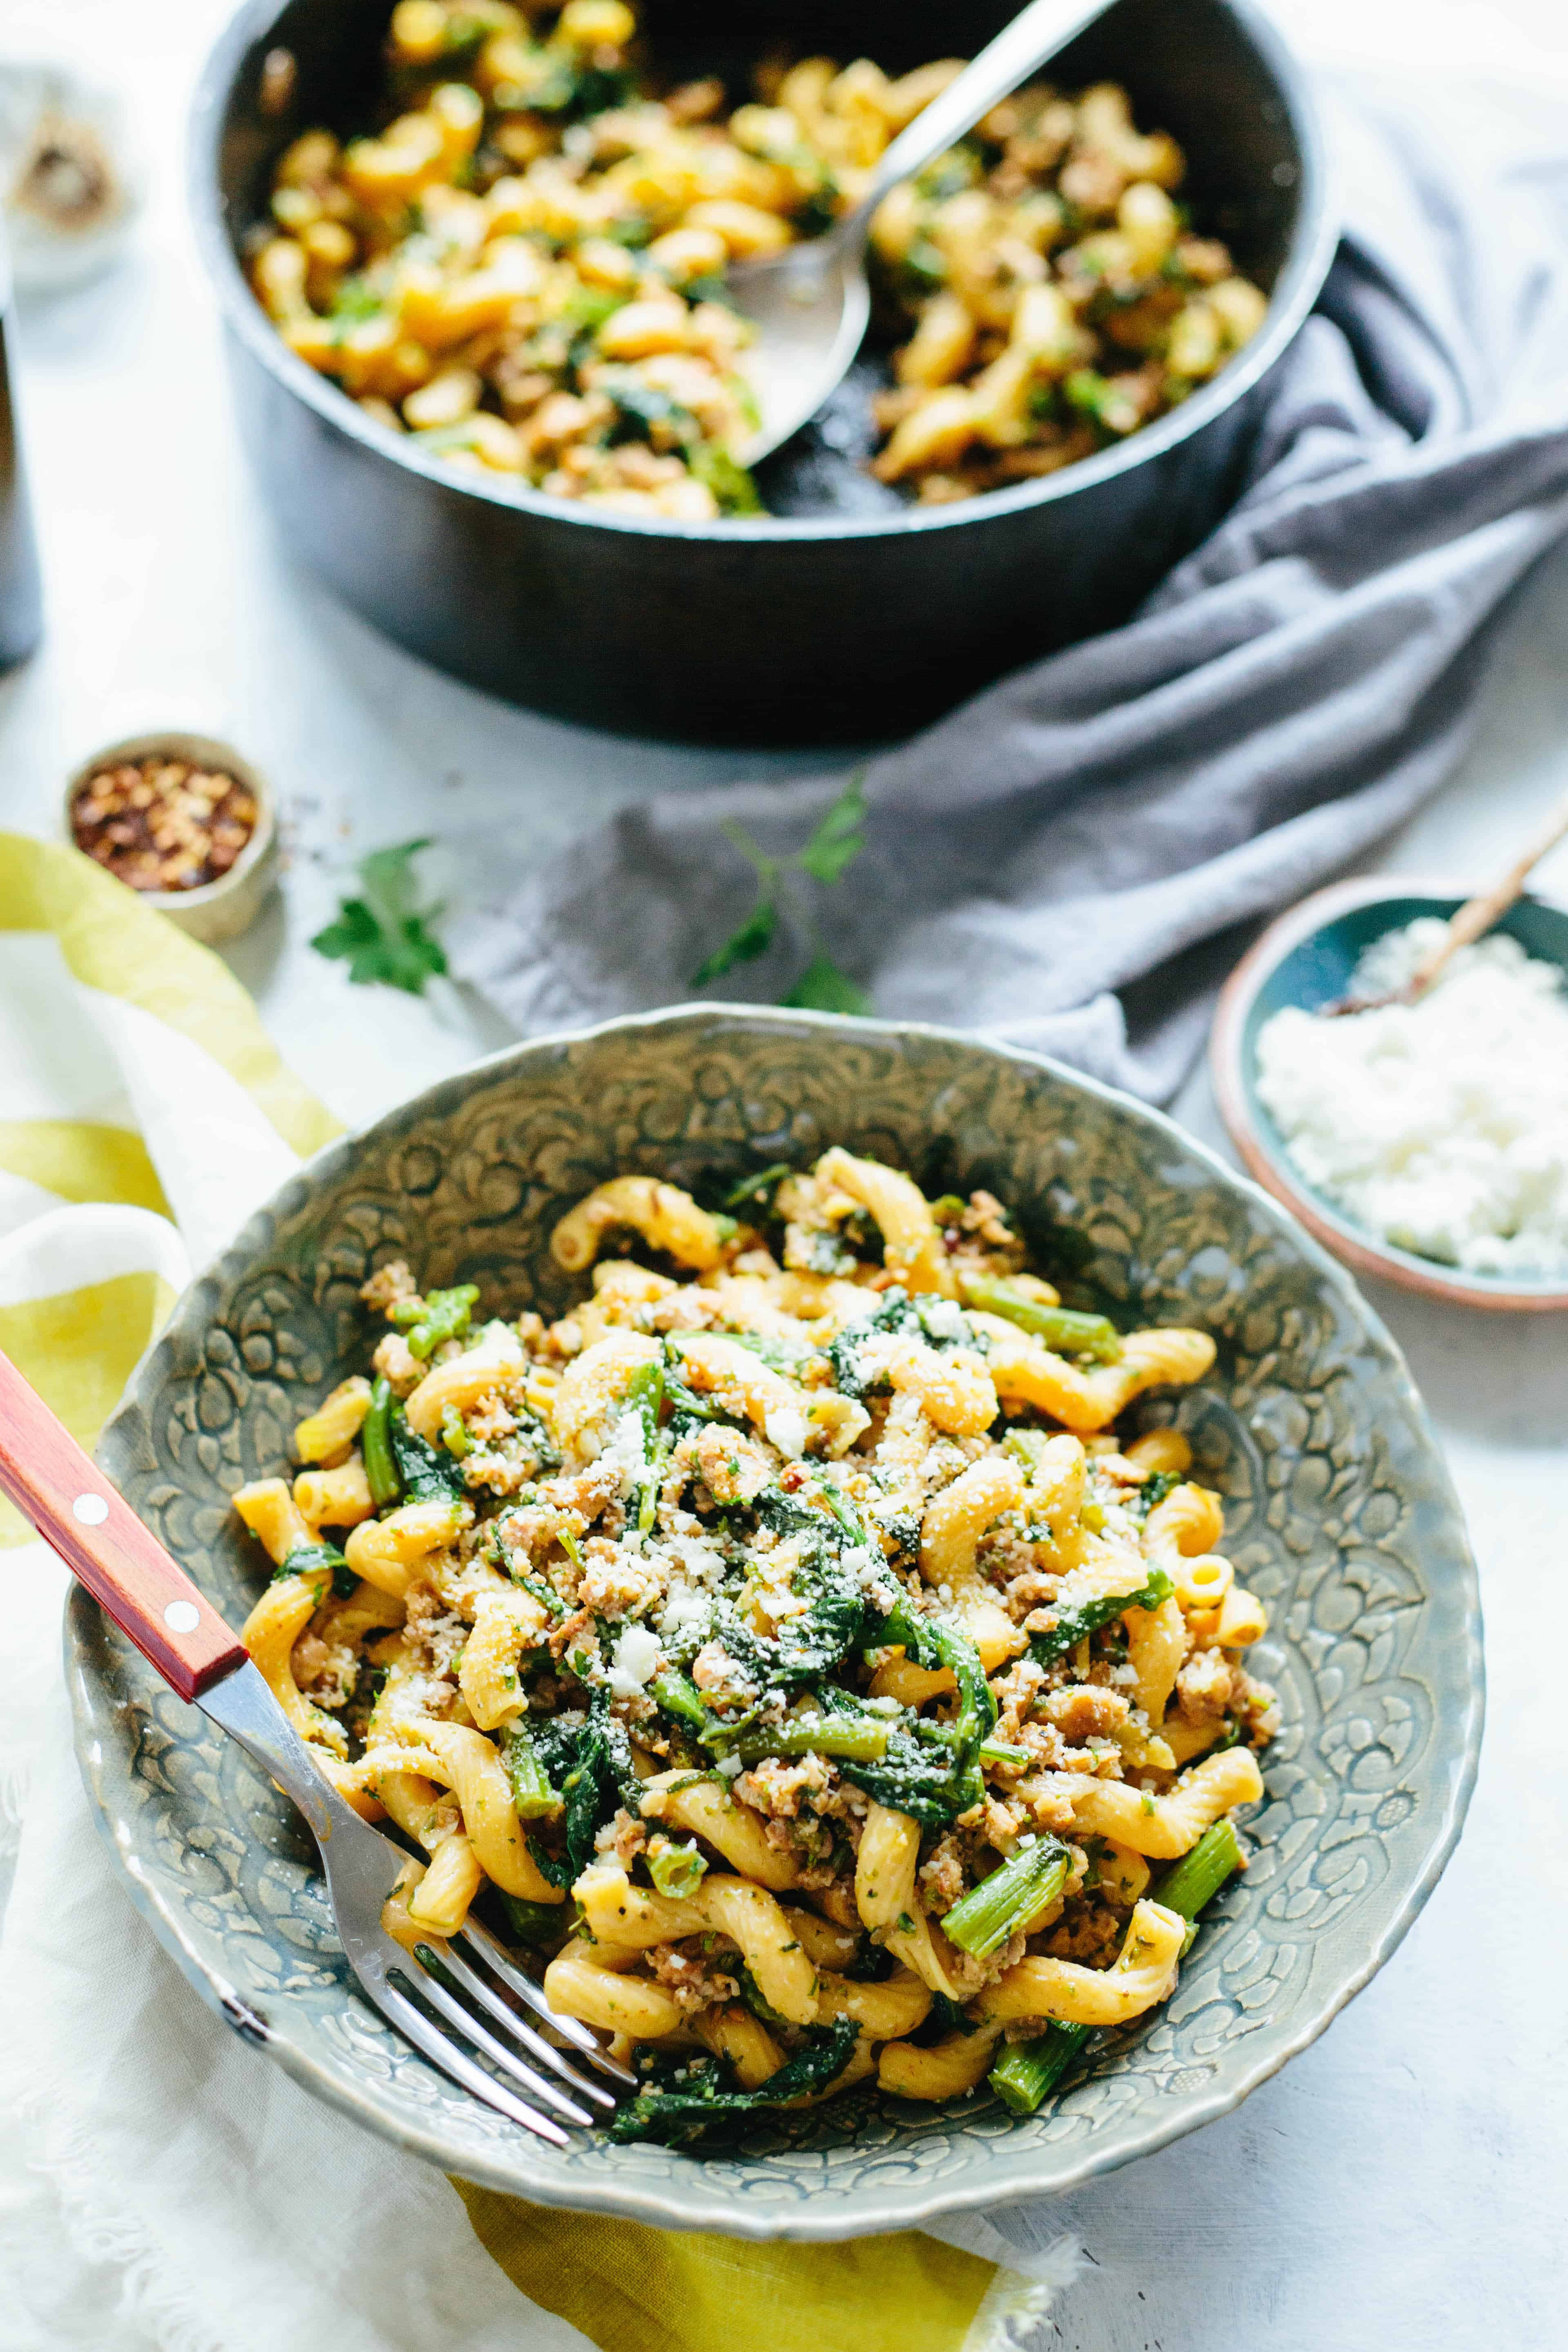 This easy recipe for Chick Pea Pasta with Italian Sausage + Broccoli Rabe is a healthy gluten free dinner that can be on the table in 20 minutes! #easy #glutenfree #pasta #italian #recipe #broccoli #sausage | ColeyCooks.com